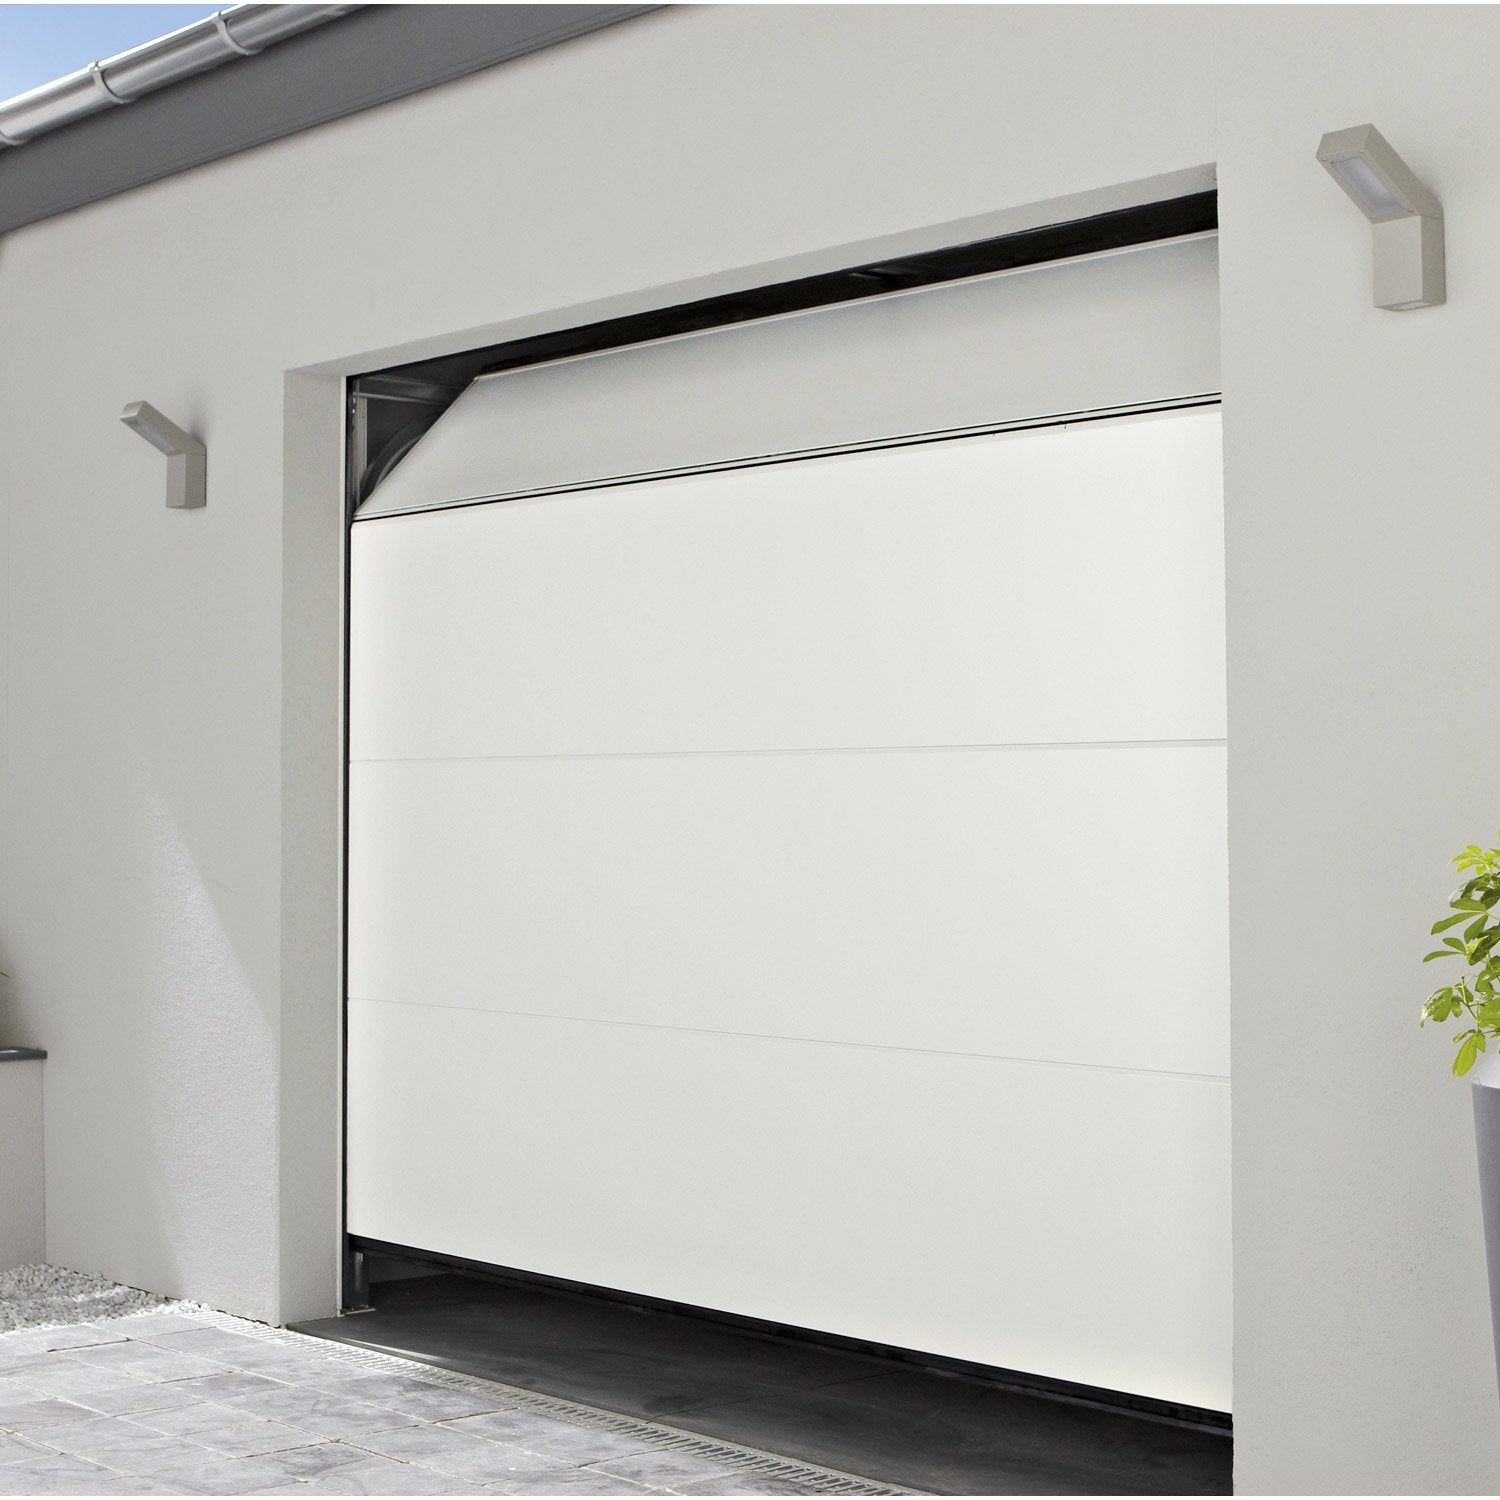 Porte de garage sectionelle motoris e chypre rainures for Porte de garage 5m hormann